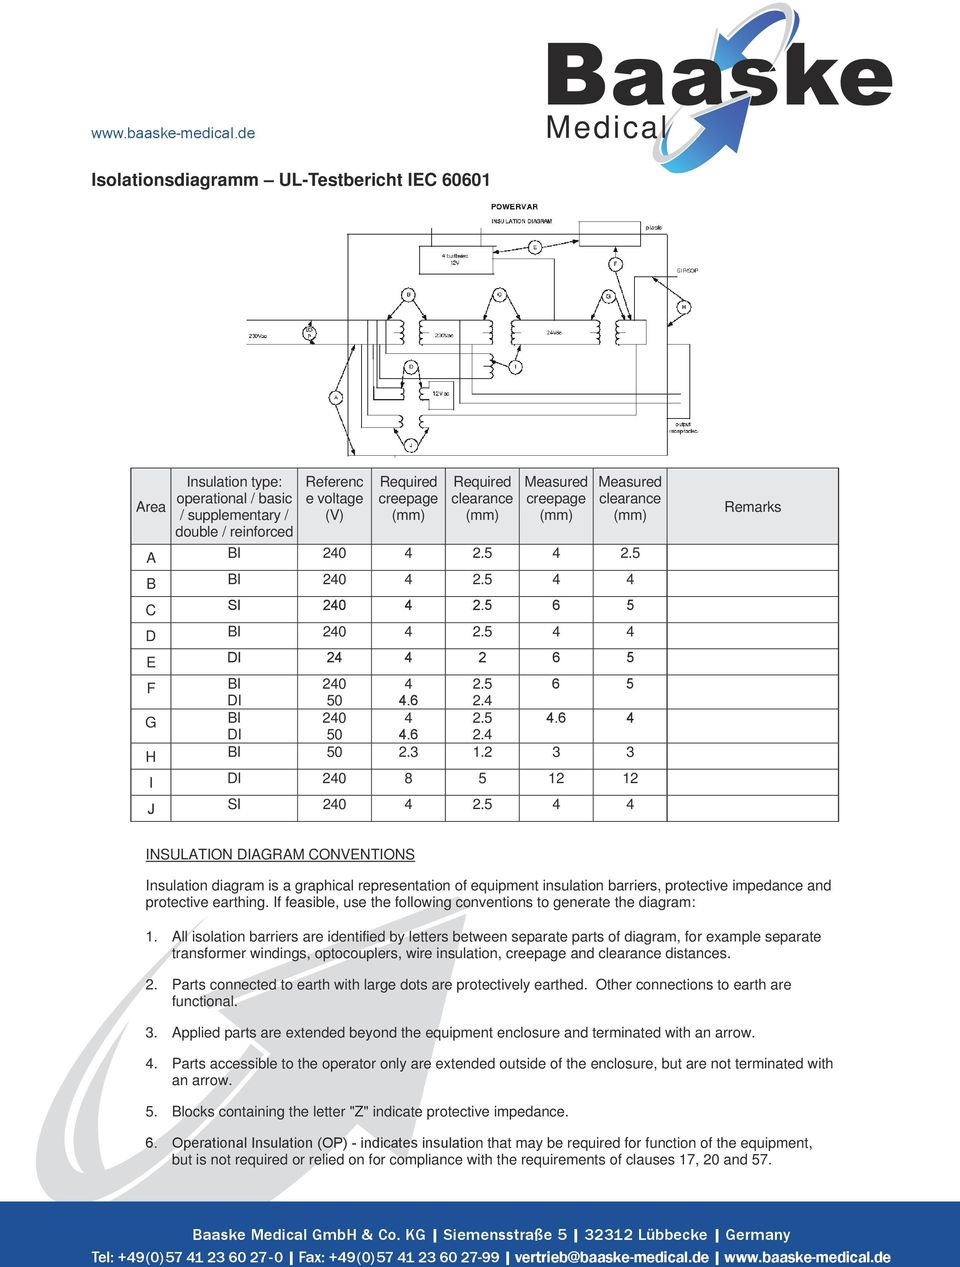 Area TABLE: to insulation diagram Insulation type: operational / basic / supplementary / double / reinforced Referenc e voltage (V) Required creepage Required clearance Measured creepage Measured